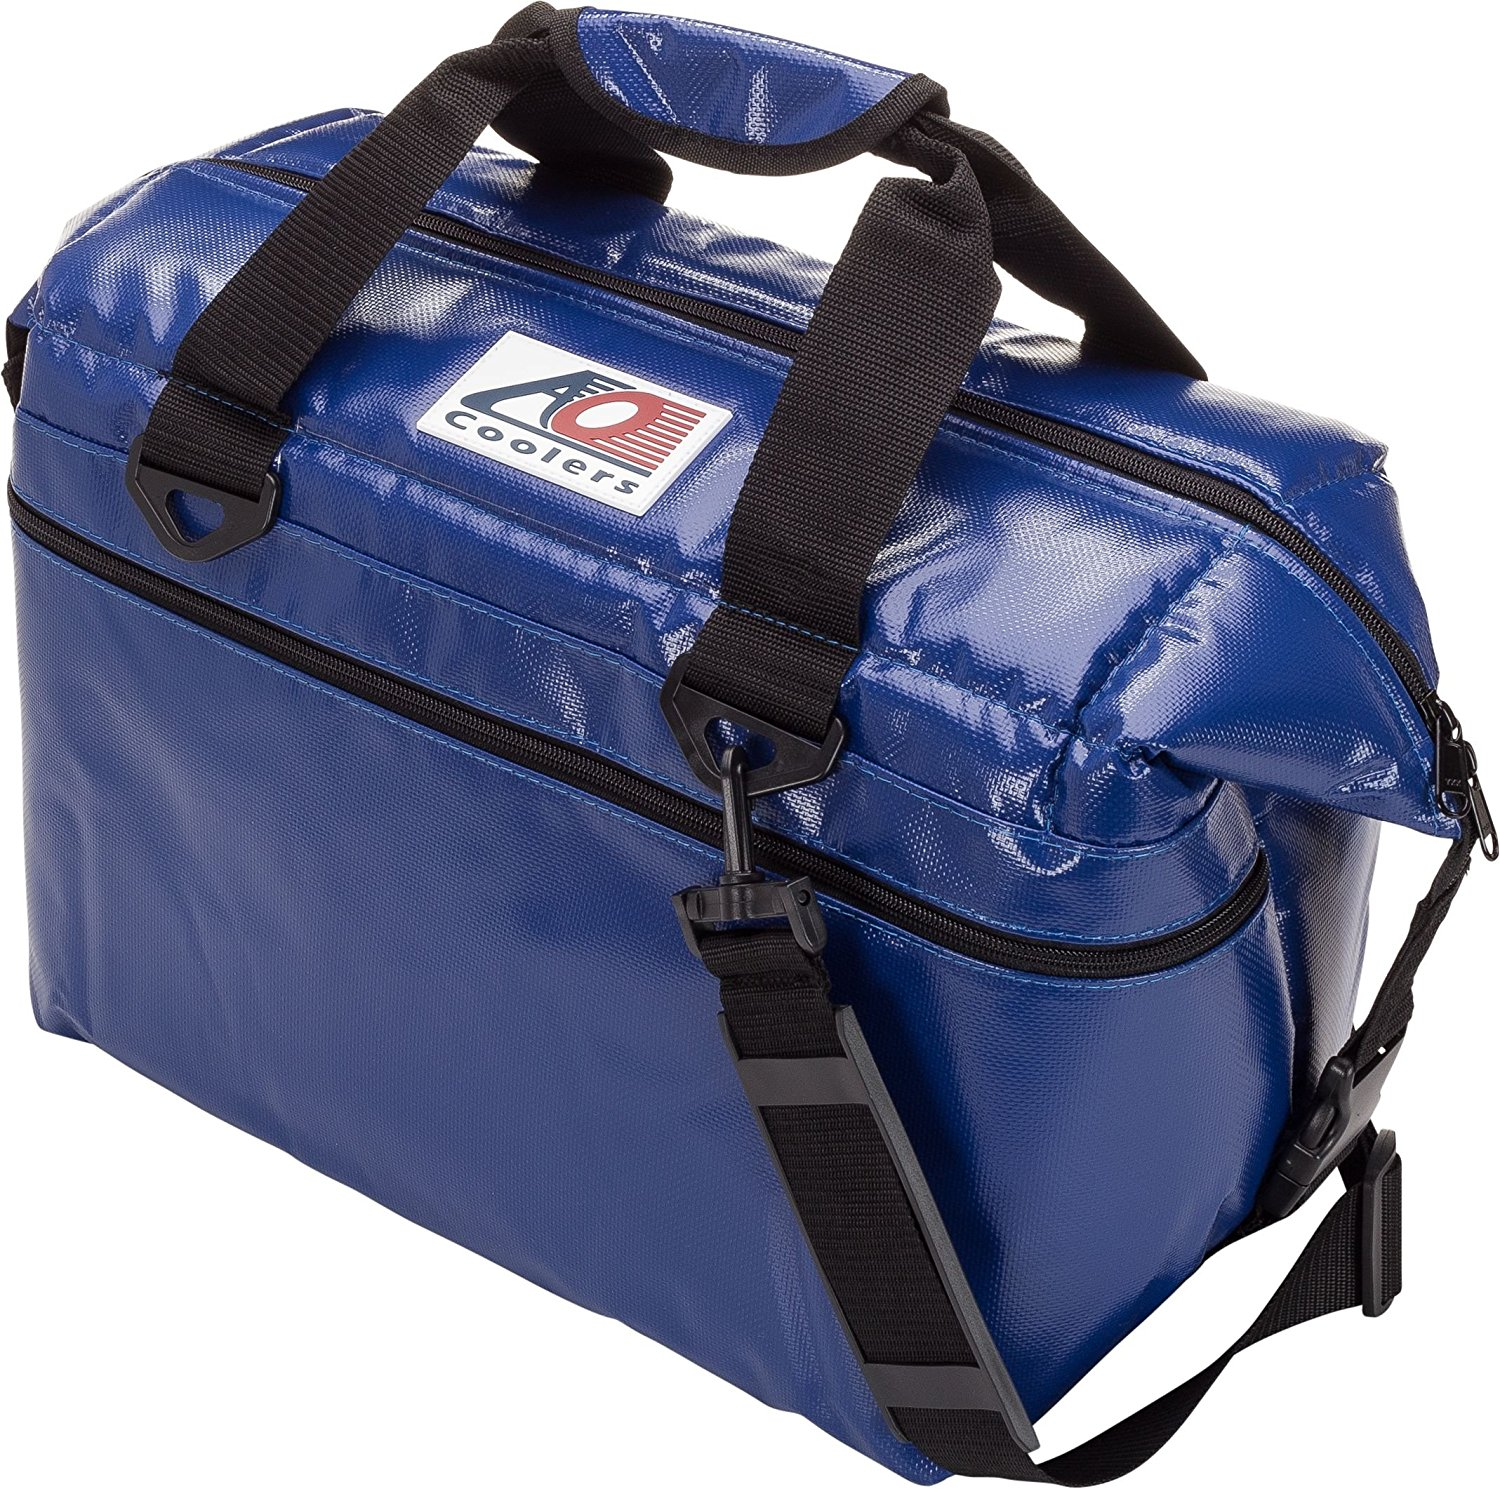 AO Coolers Water-Resistant Vinyl Soft Cooler